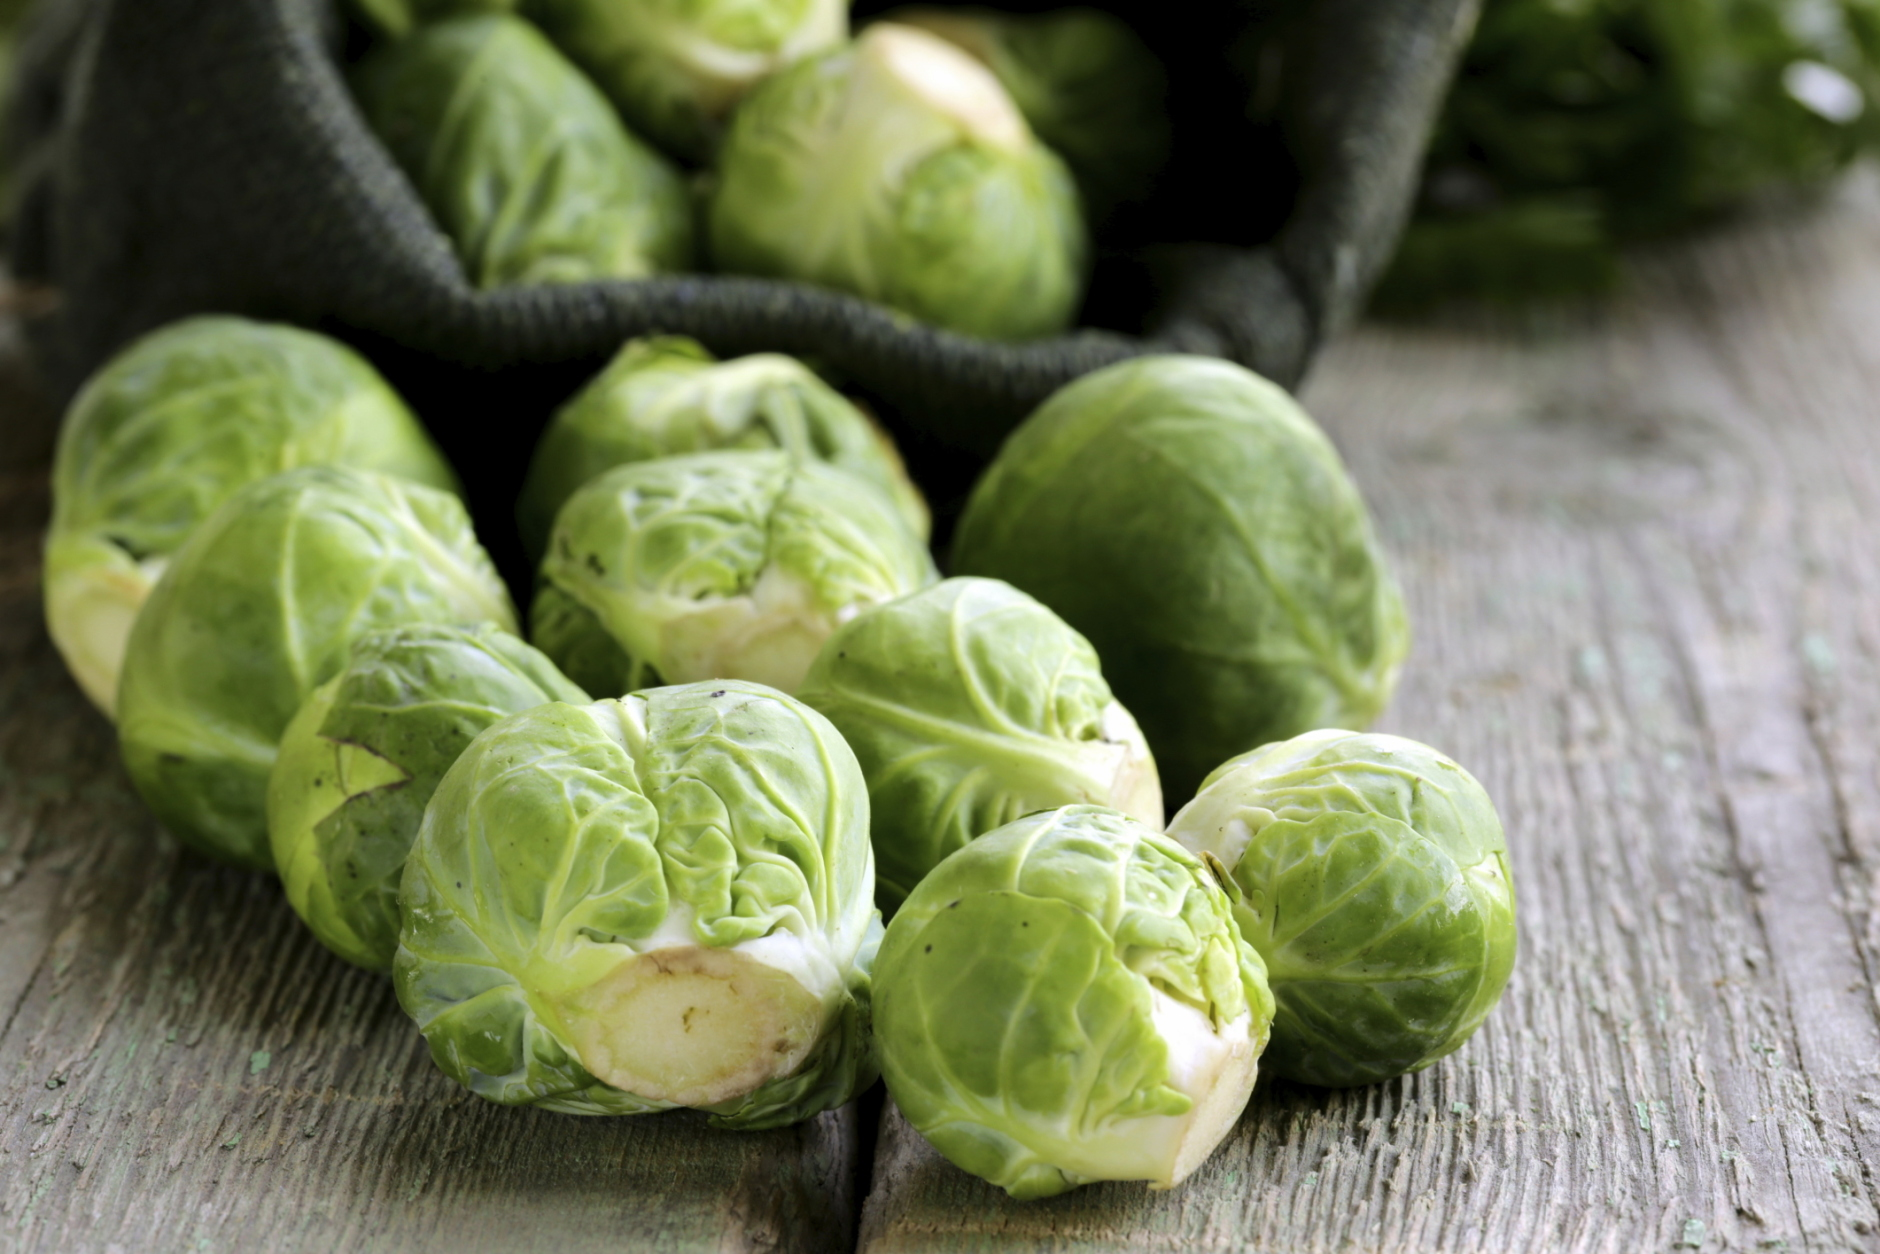 Don't limit Brussels sprouts to the bowl. Roast them and stick them on skewers with  chunks of roasted butternut squash and roasted red grapes for a tasty appetizer. (Thinkstock)